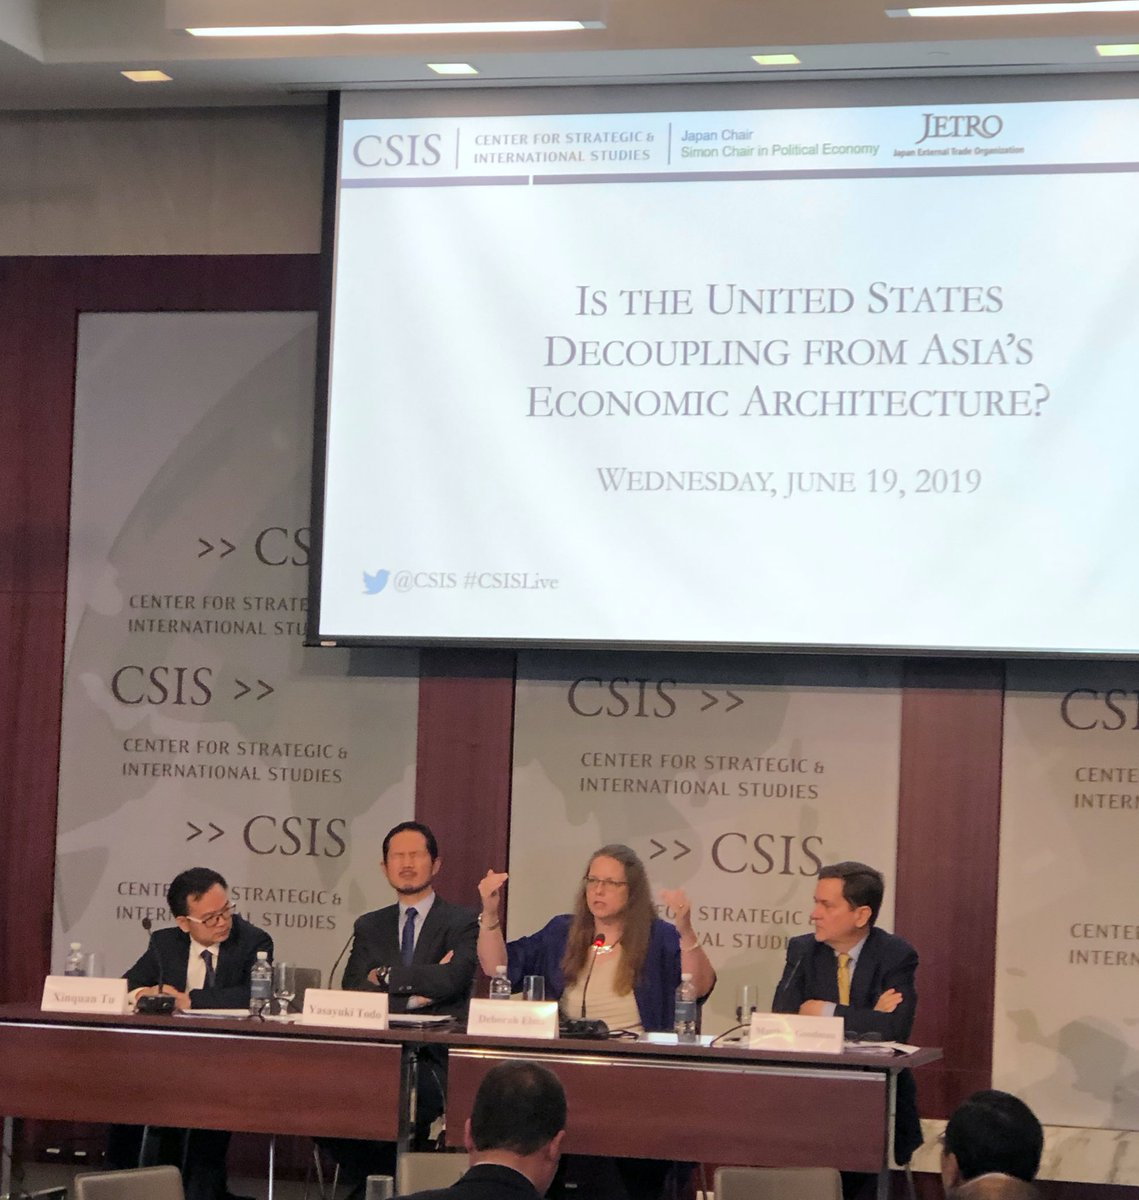 Deborah Elms @ATradeCentre: If #Vietnam can do #CPTPP then #China can join too. No reason China can't do what's necessary to join. @CSIS @CSIS_Econ @JapanChair @JETROUSA @JETRO_info #Asia #BRI #OBOR #Trade #CSISLive – at Center for Strategic and International Studies (CSIS)